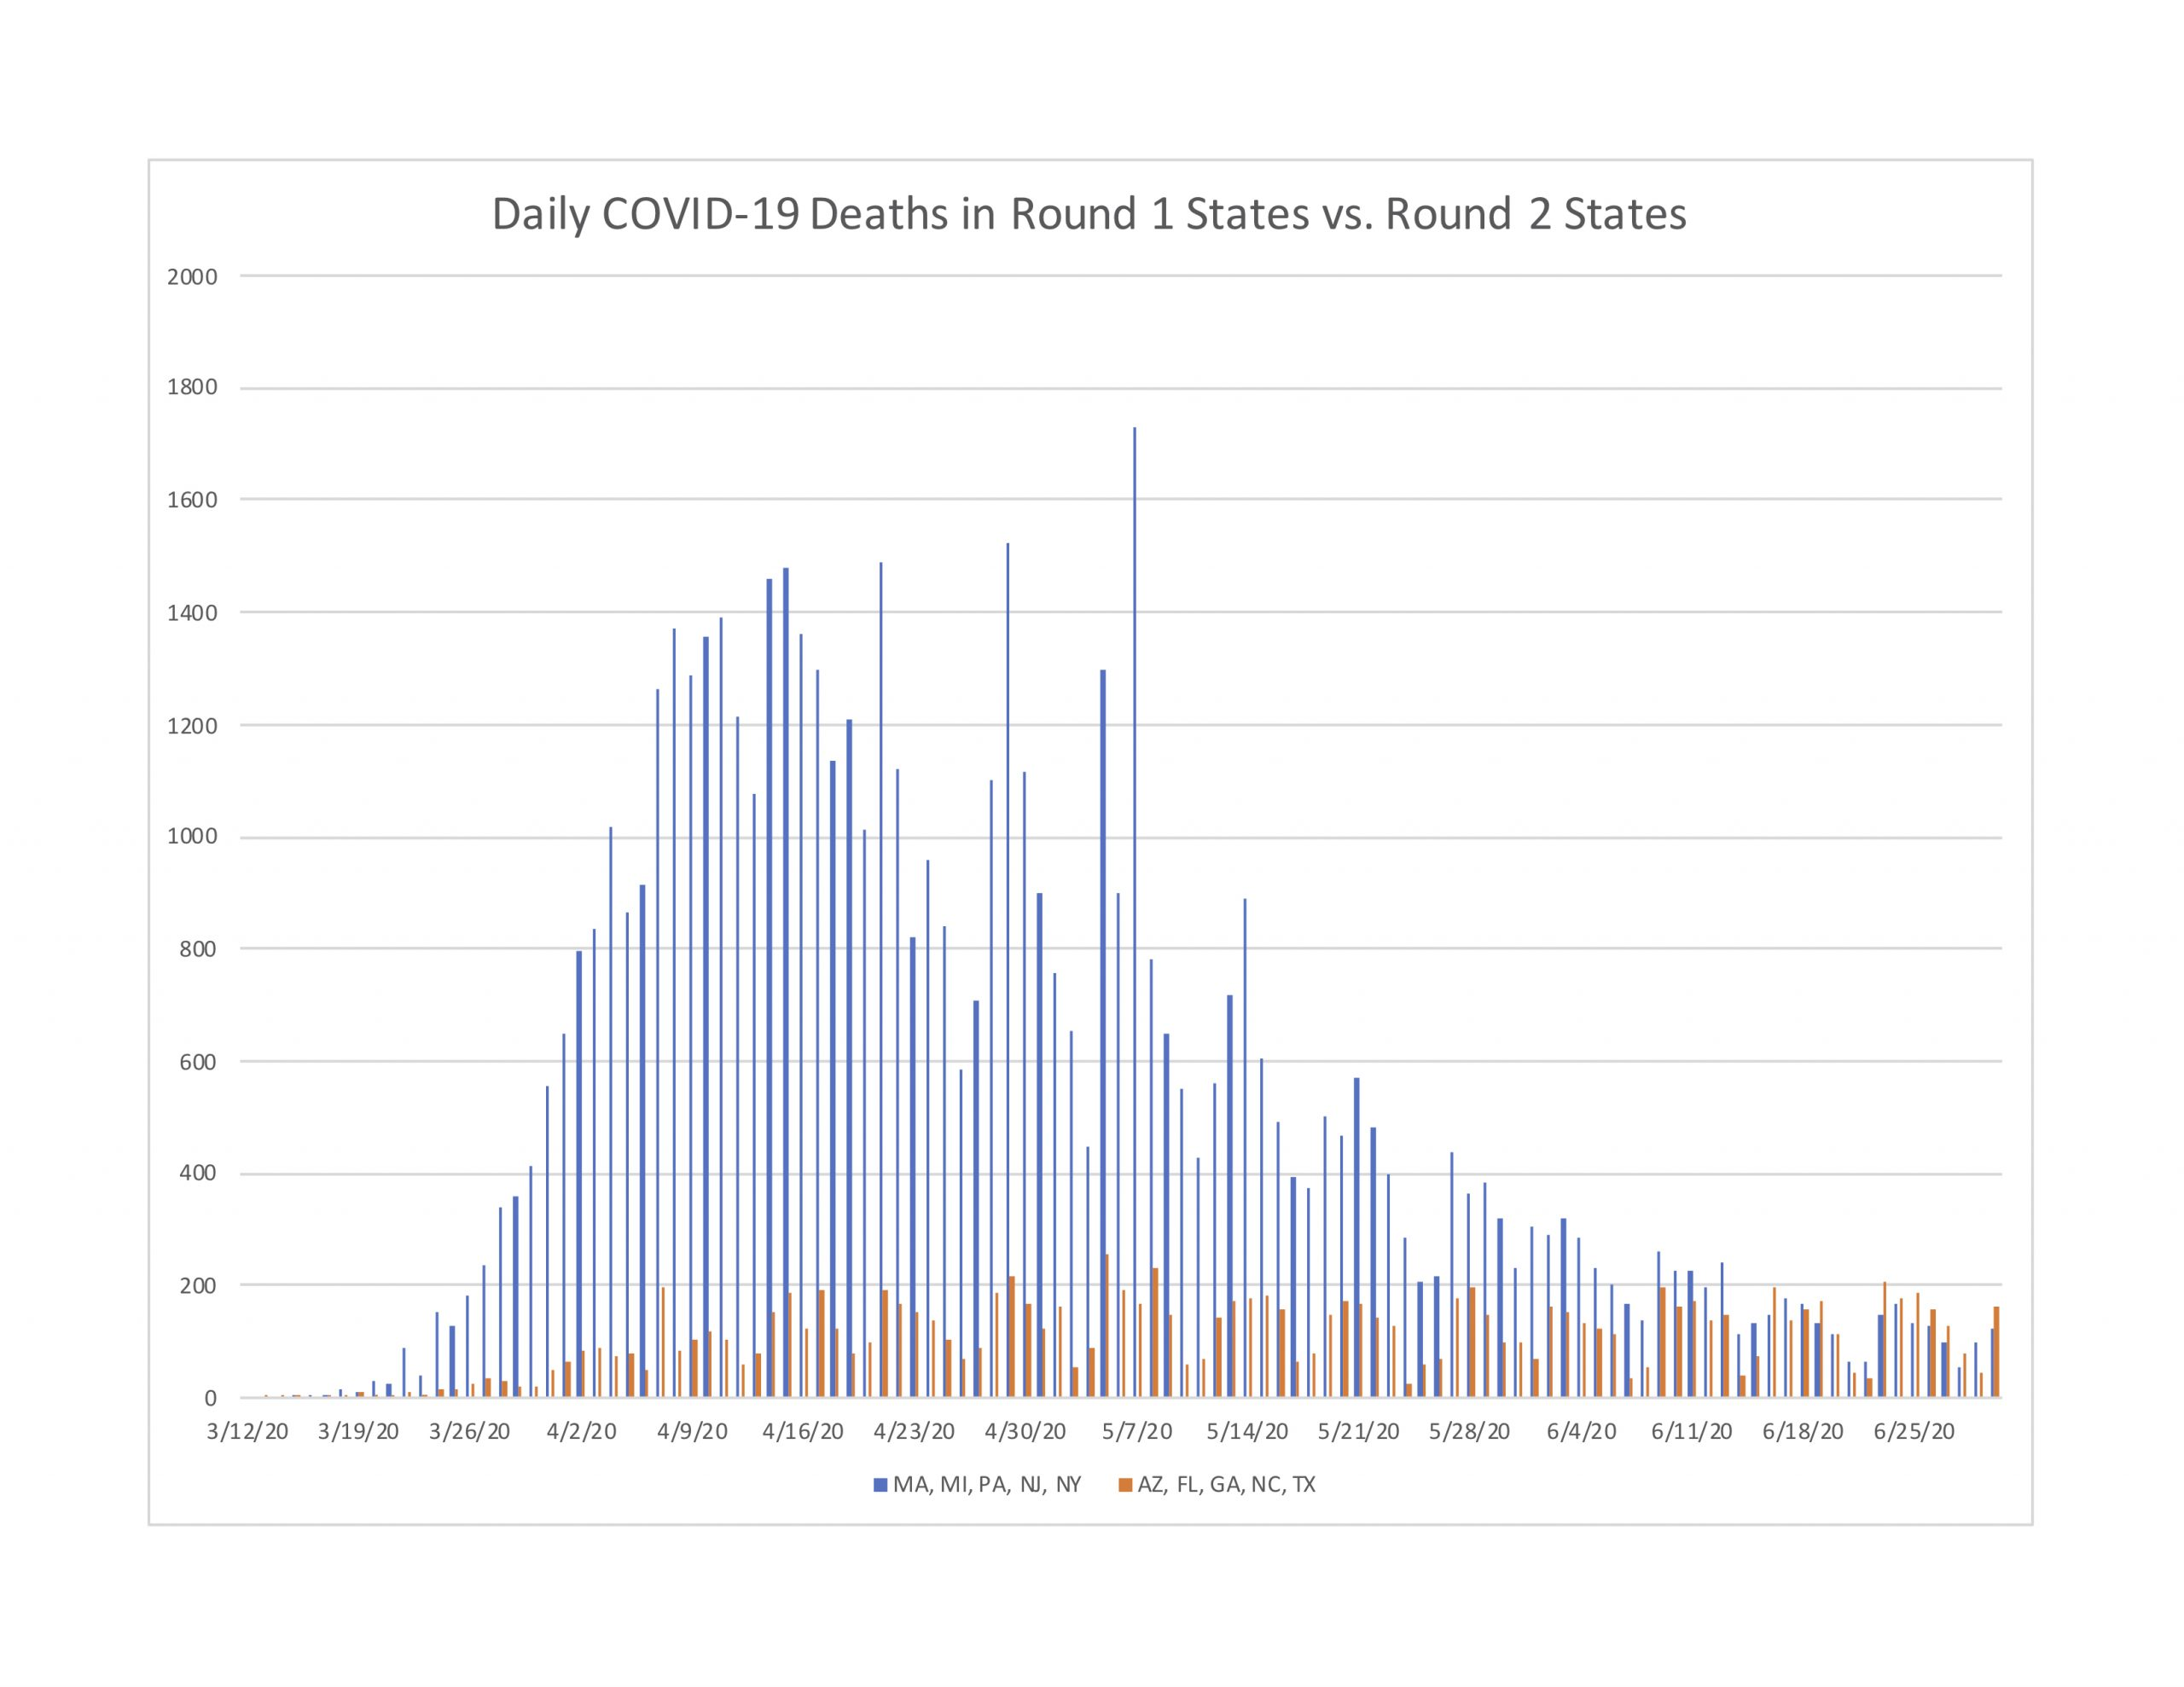 Figure 2: Deaths per day in five Round 1 states compared to five Round 2 states